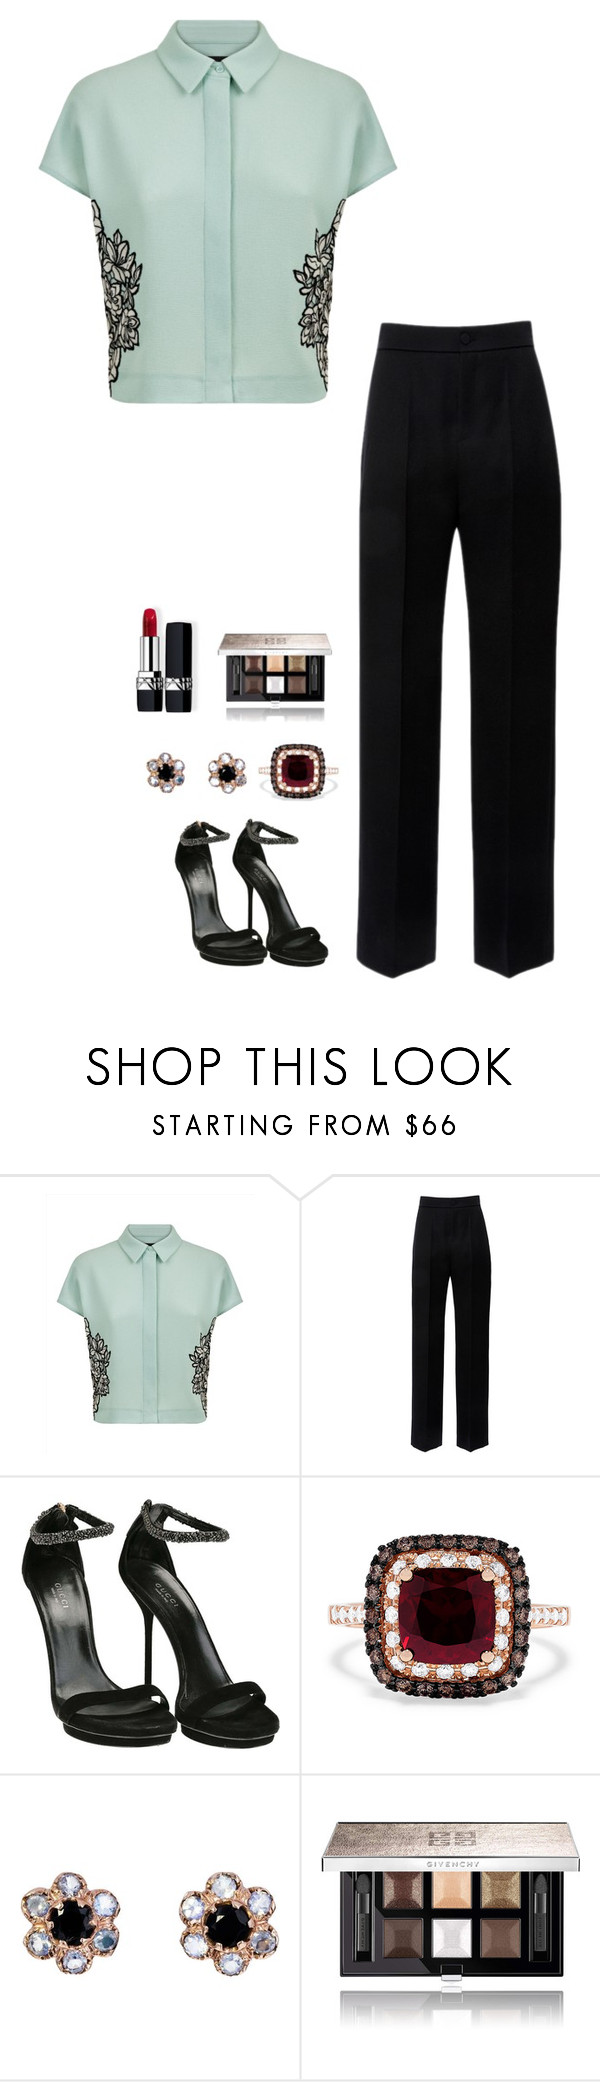 """Untitled #1112"" by h1234l on Polyvore featuring Jaeger, Lanvin, Gucci, Effy Jewelry, Arik Kastan, Givenchy and Christian Dior"